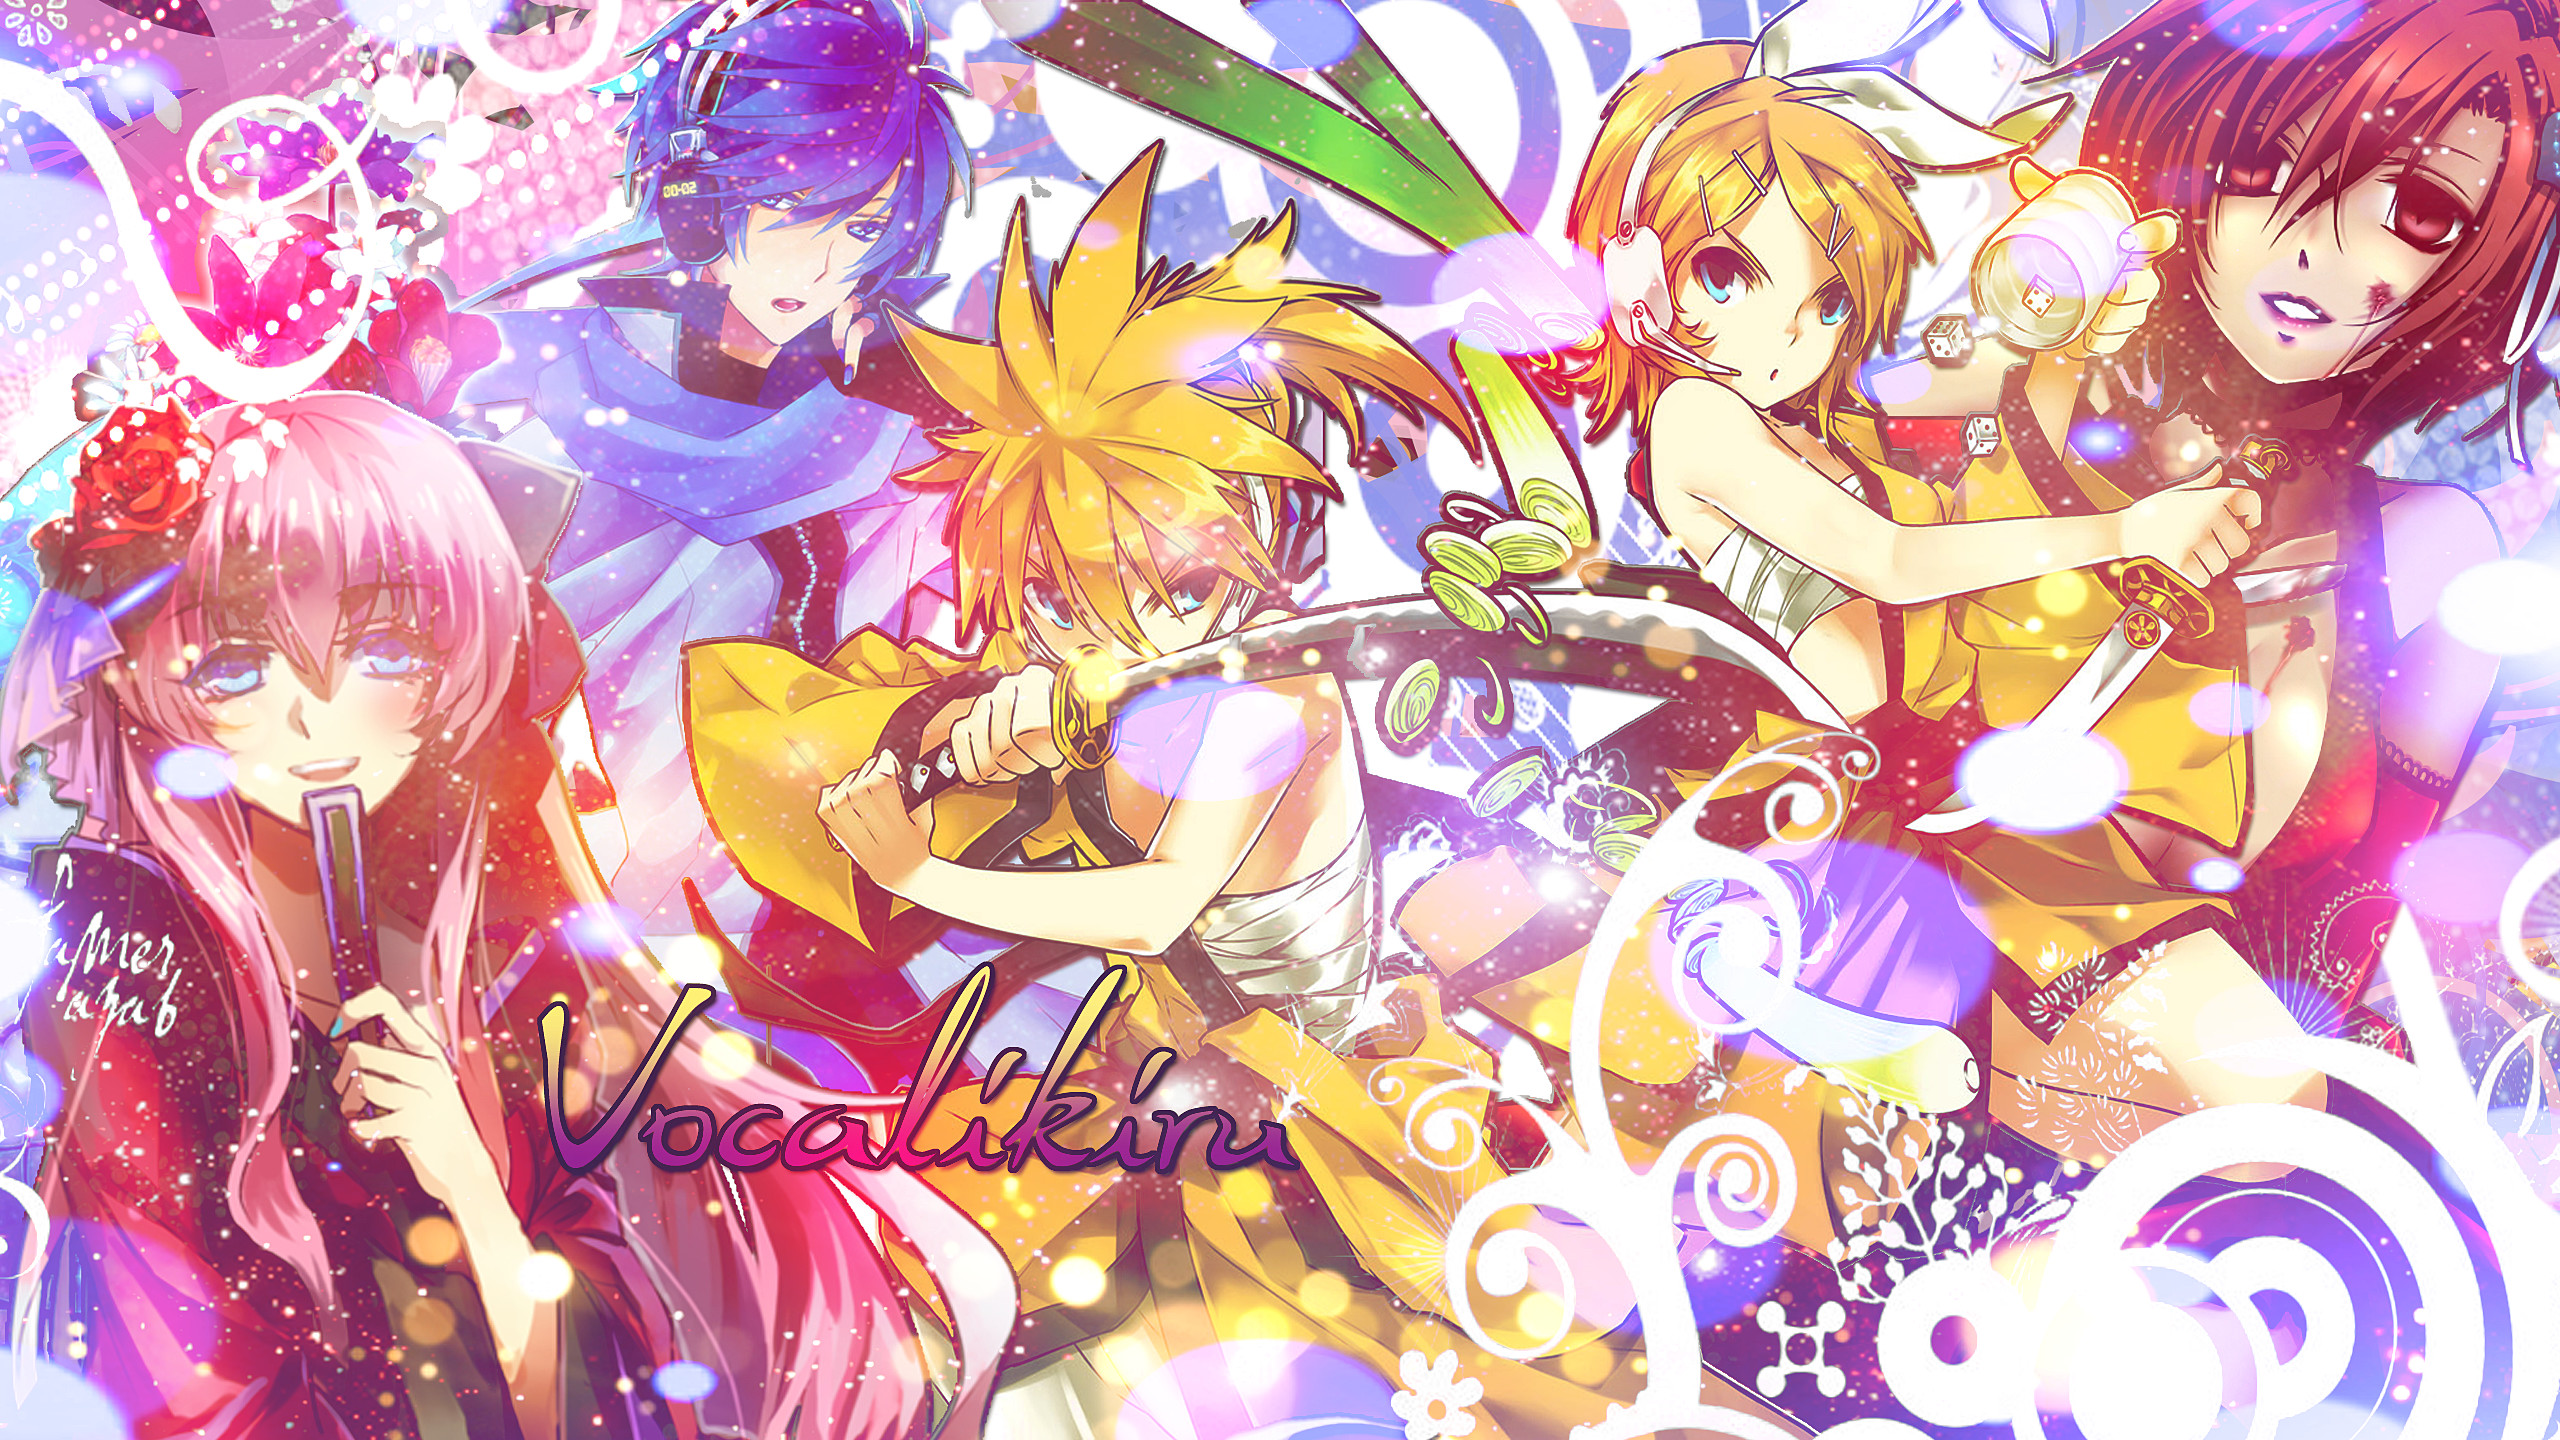 2560x1440 ... Vocaloid Wallpaper Another Version - Youtube by Bakalyss